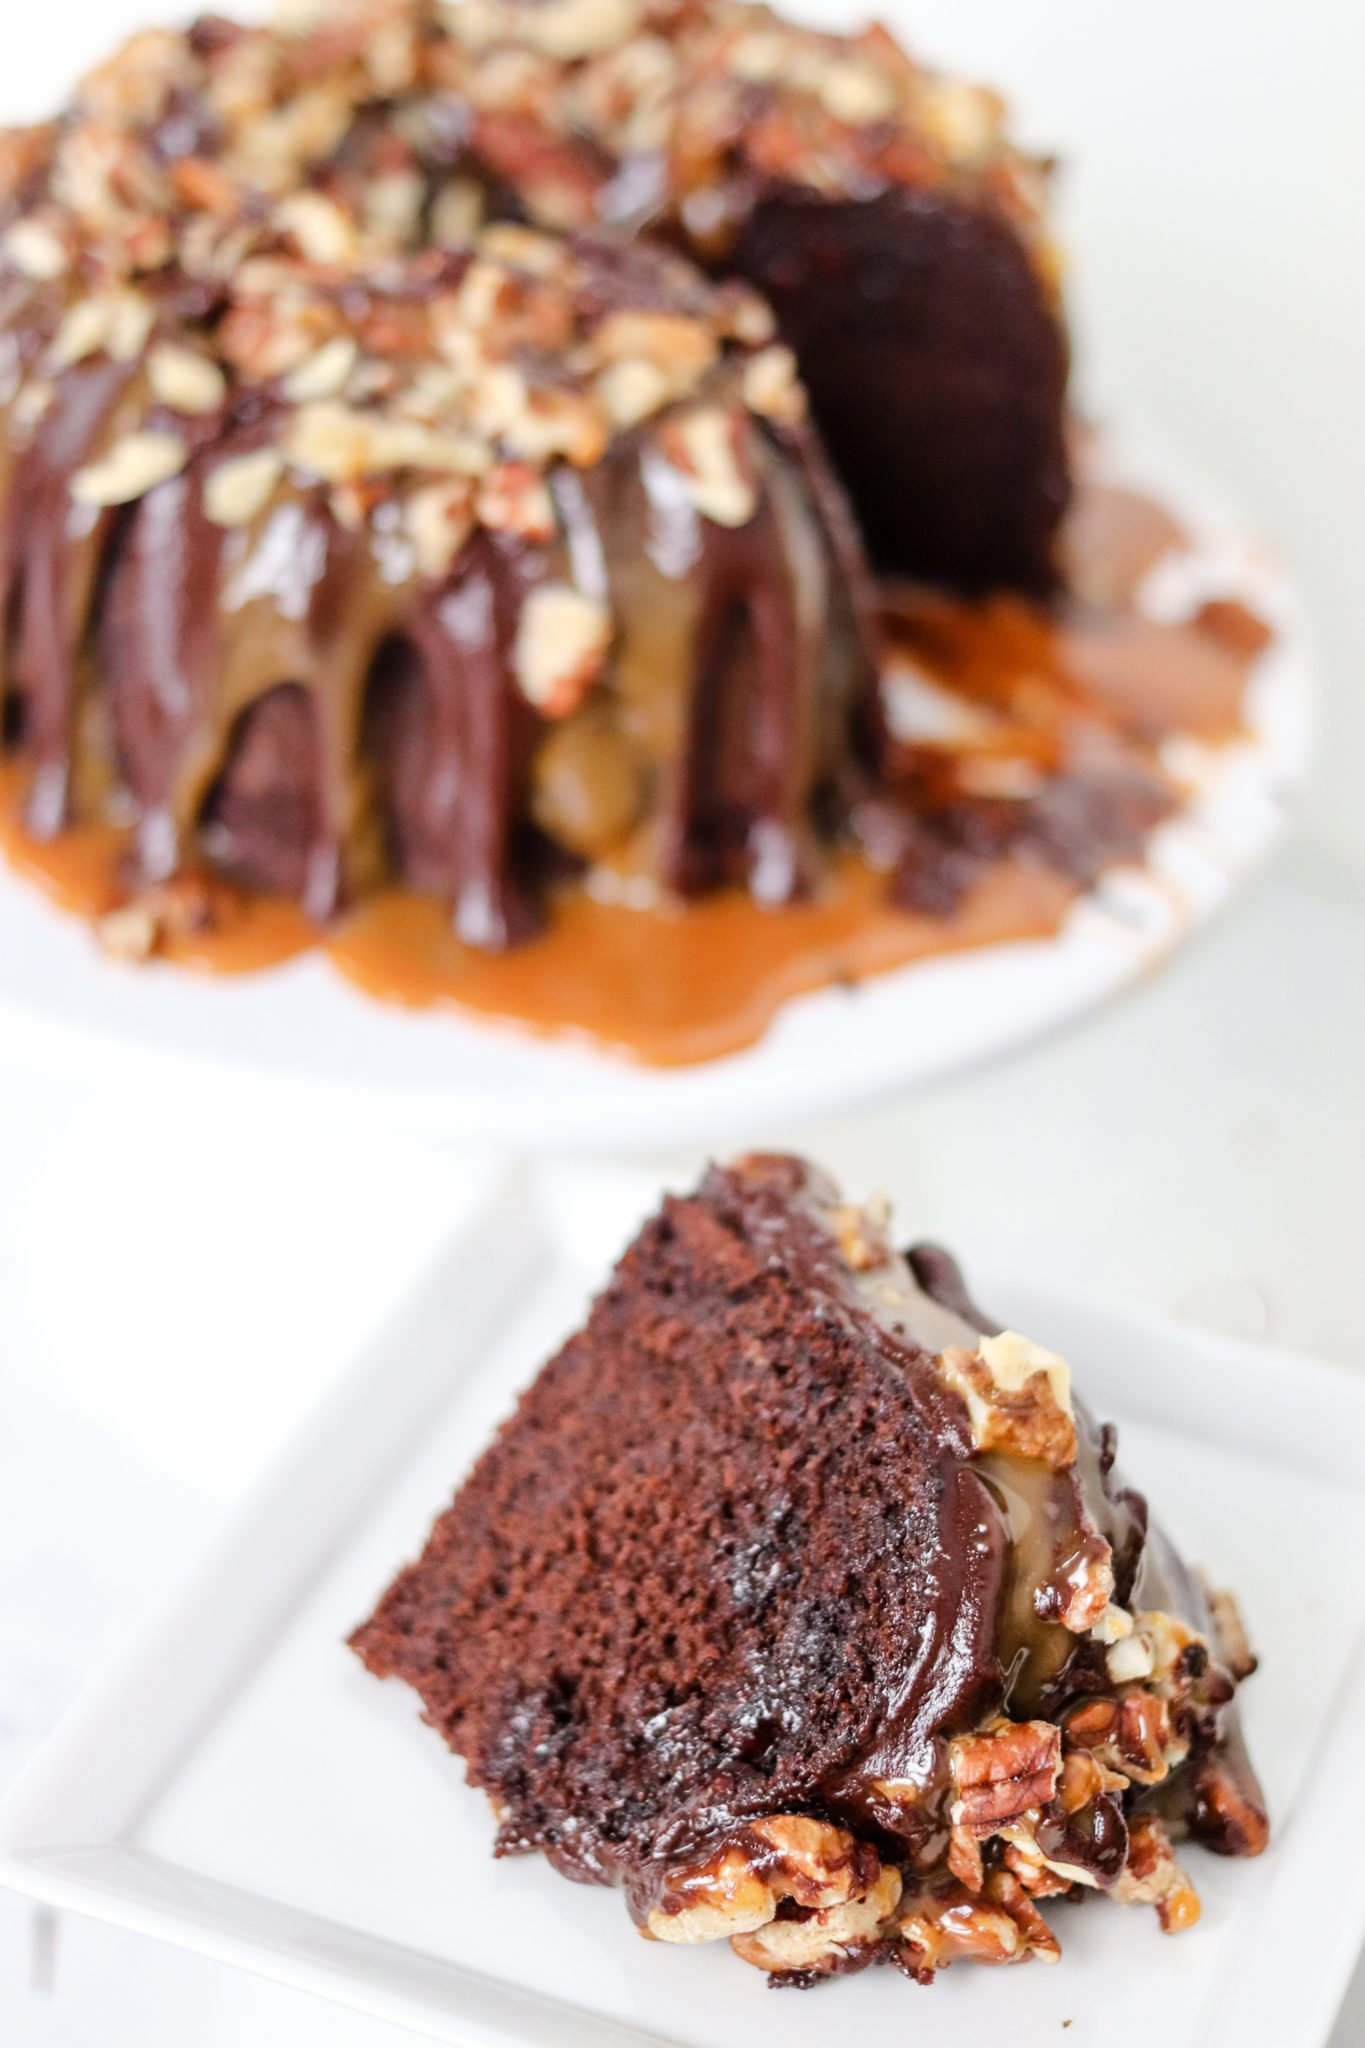 slice of the instant pot chocolate turtle cake